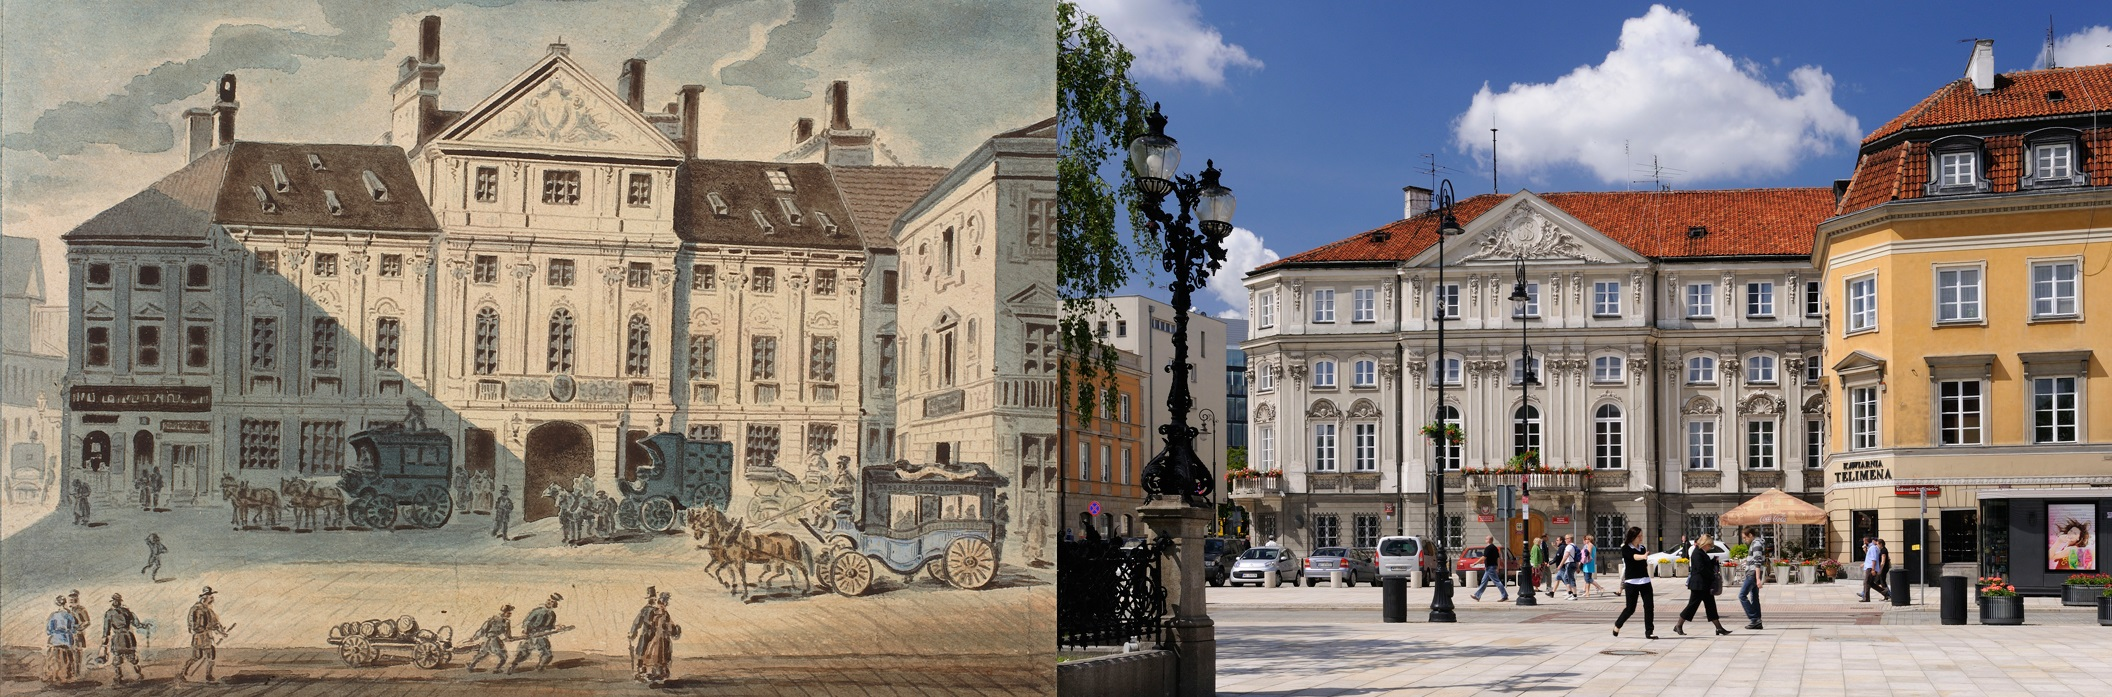 Step in Warsaw - City guide to Warsaw. The Wessel Palace in Fryderyk Chopin's times and today (Warsaw, Krakowskie Przedmieście Street No 25). It was the post office here in that time. The mail coach for Vienna left from that place every afternoon. On the 2nd November of 1830 Fryderyk Chopin was aboard. Source: http://en.chopin.warsawtour.pl/.